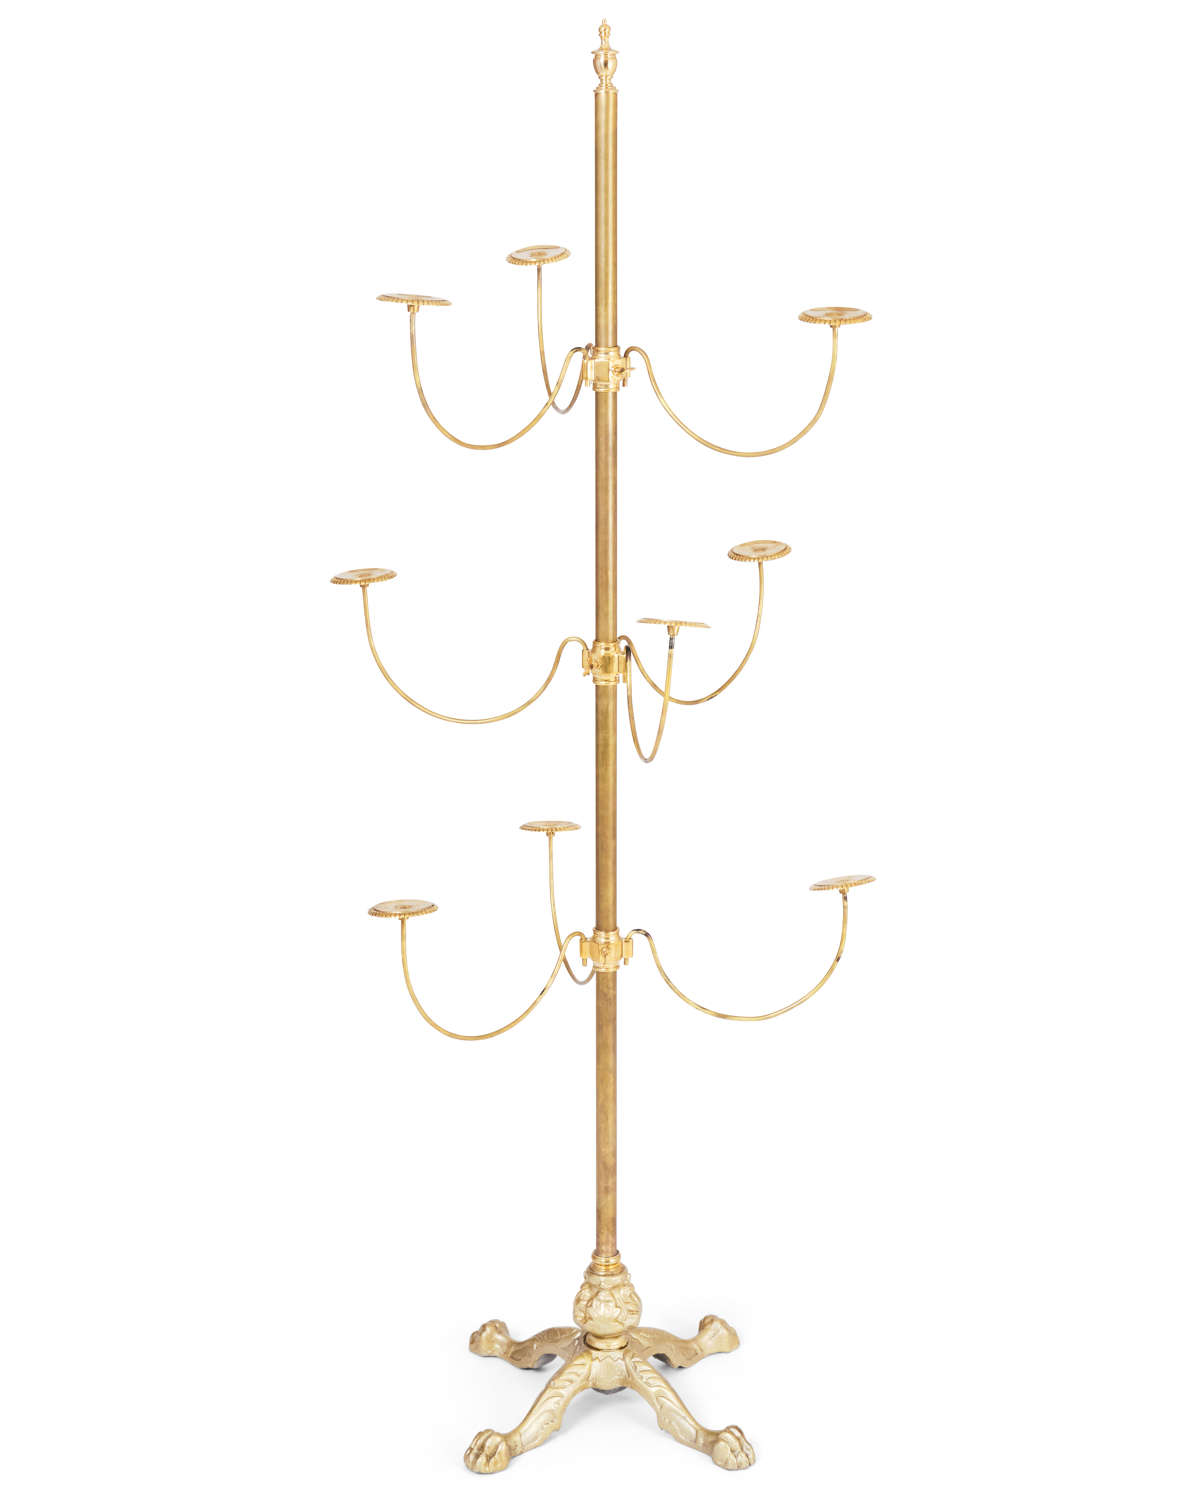 Victorian style brass Hat Stand with 9 arms